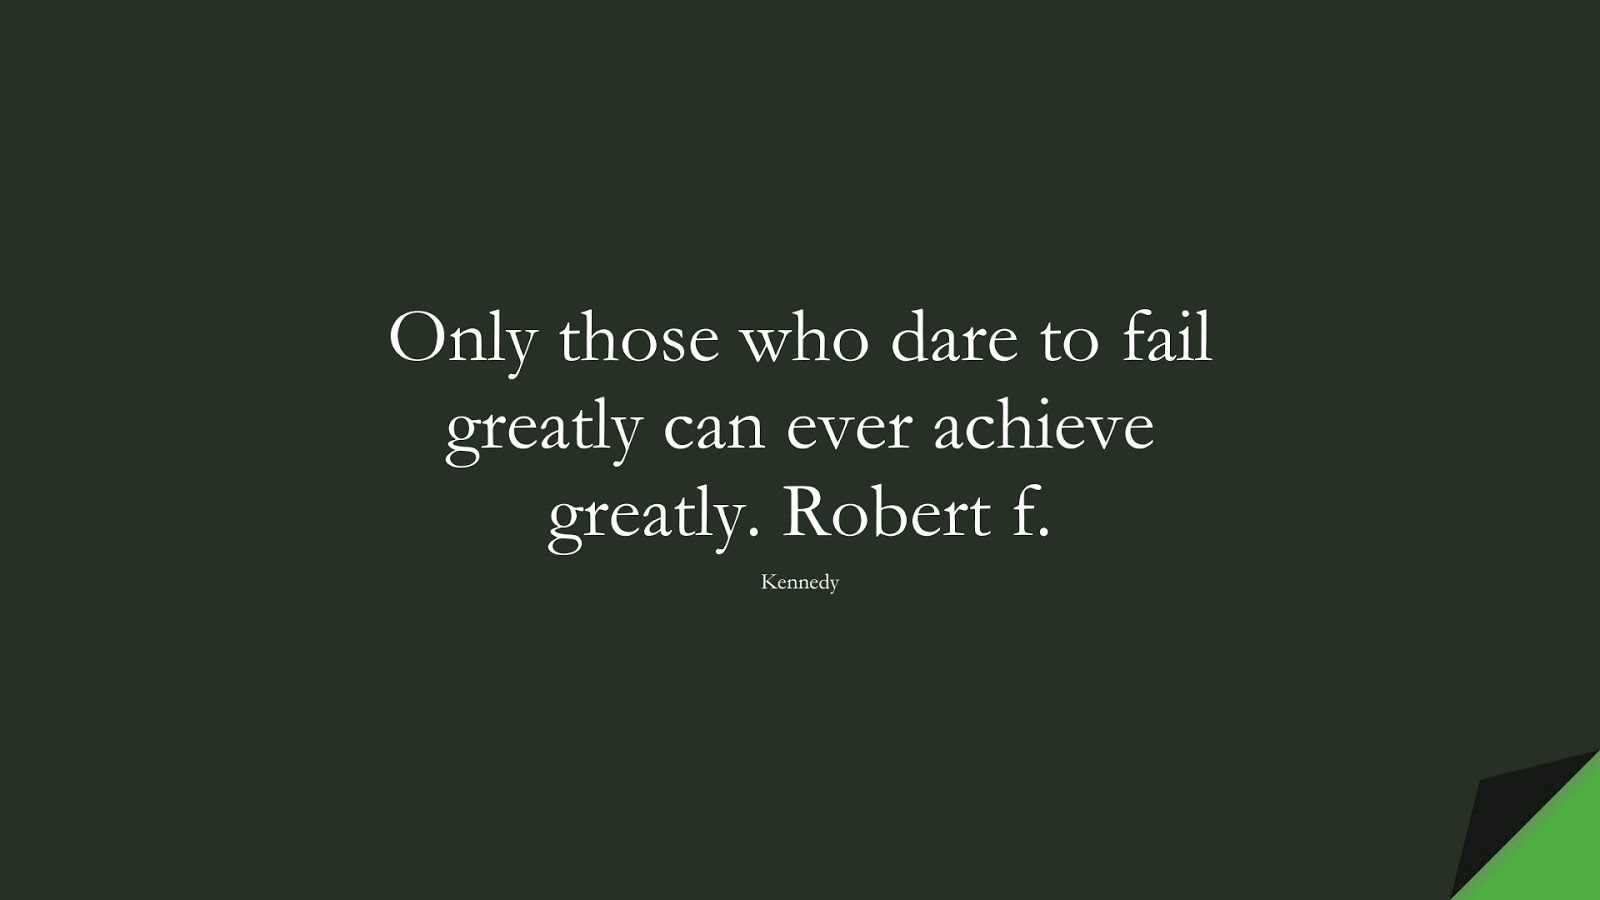 Only those who dare to fail greatly can ever achieve greatly. Robert f. (Kennedy);  #SuccessQuotes